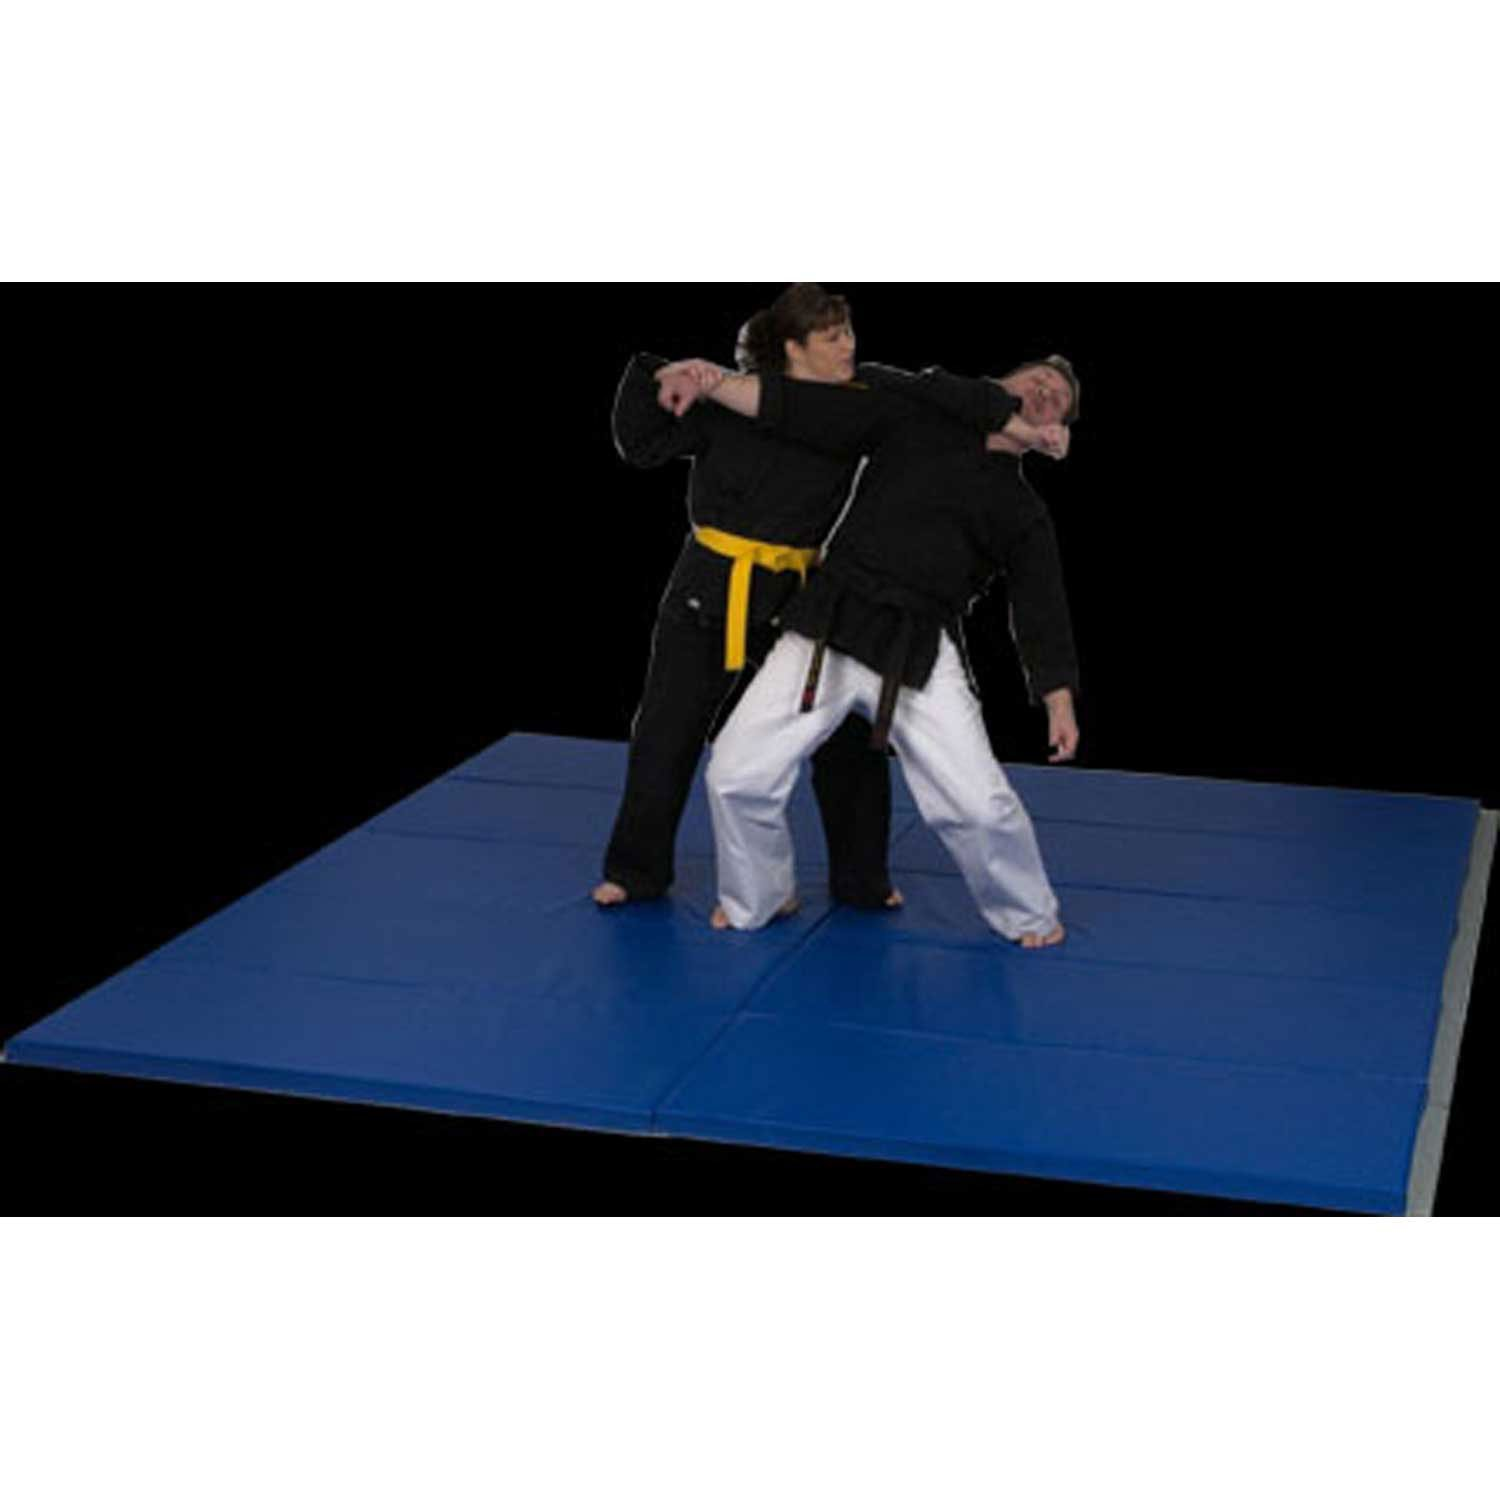 Deluxe Martial Arts折りたたみマット、6 ' x 12 ' x 2